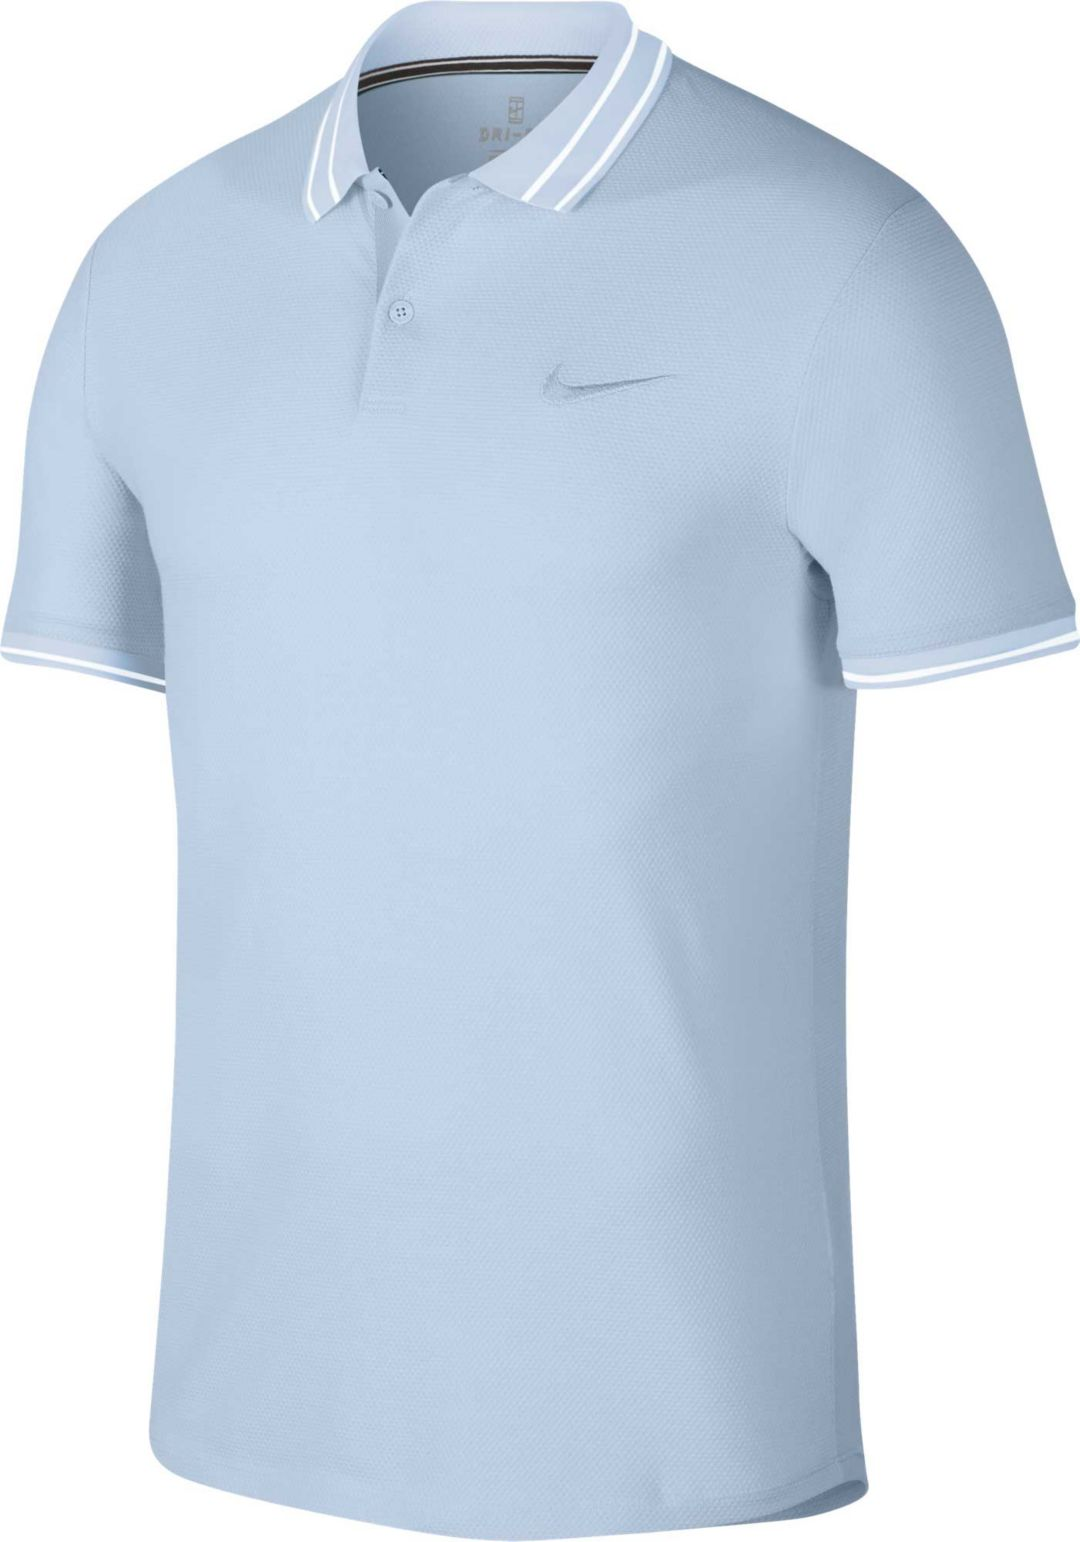 831186d742969 Top 10 Punto Medio Noticias | Nike Men's Dri Fit Stay Cool Tennis ...